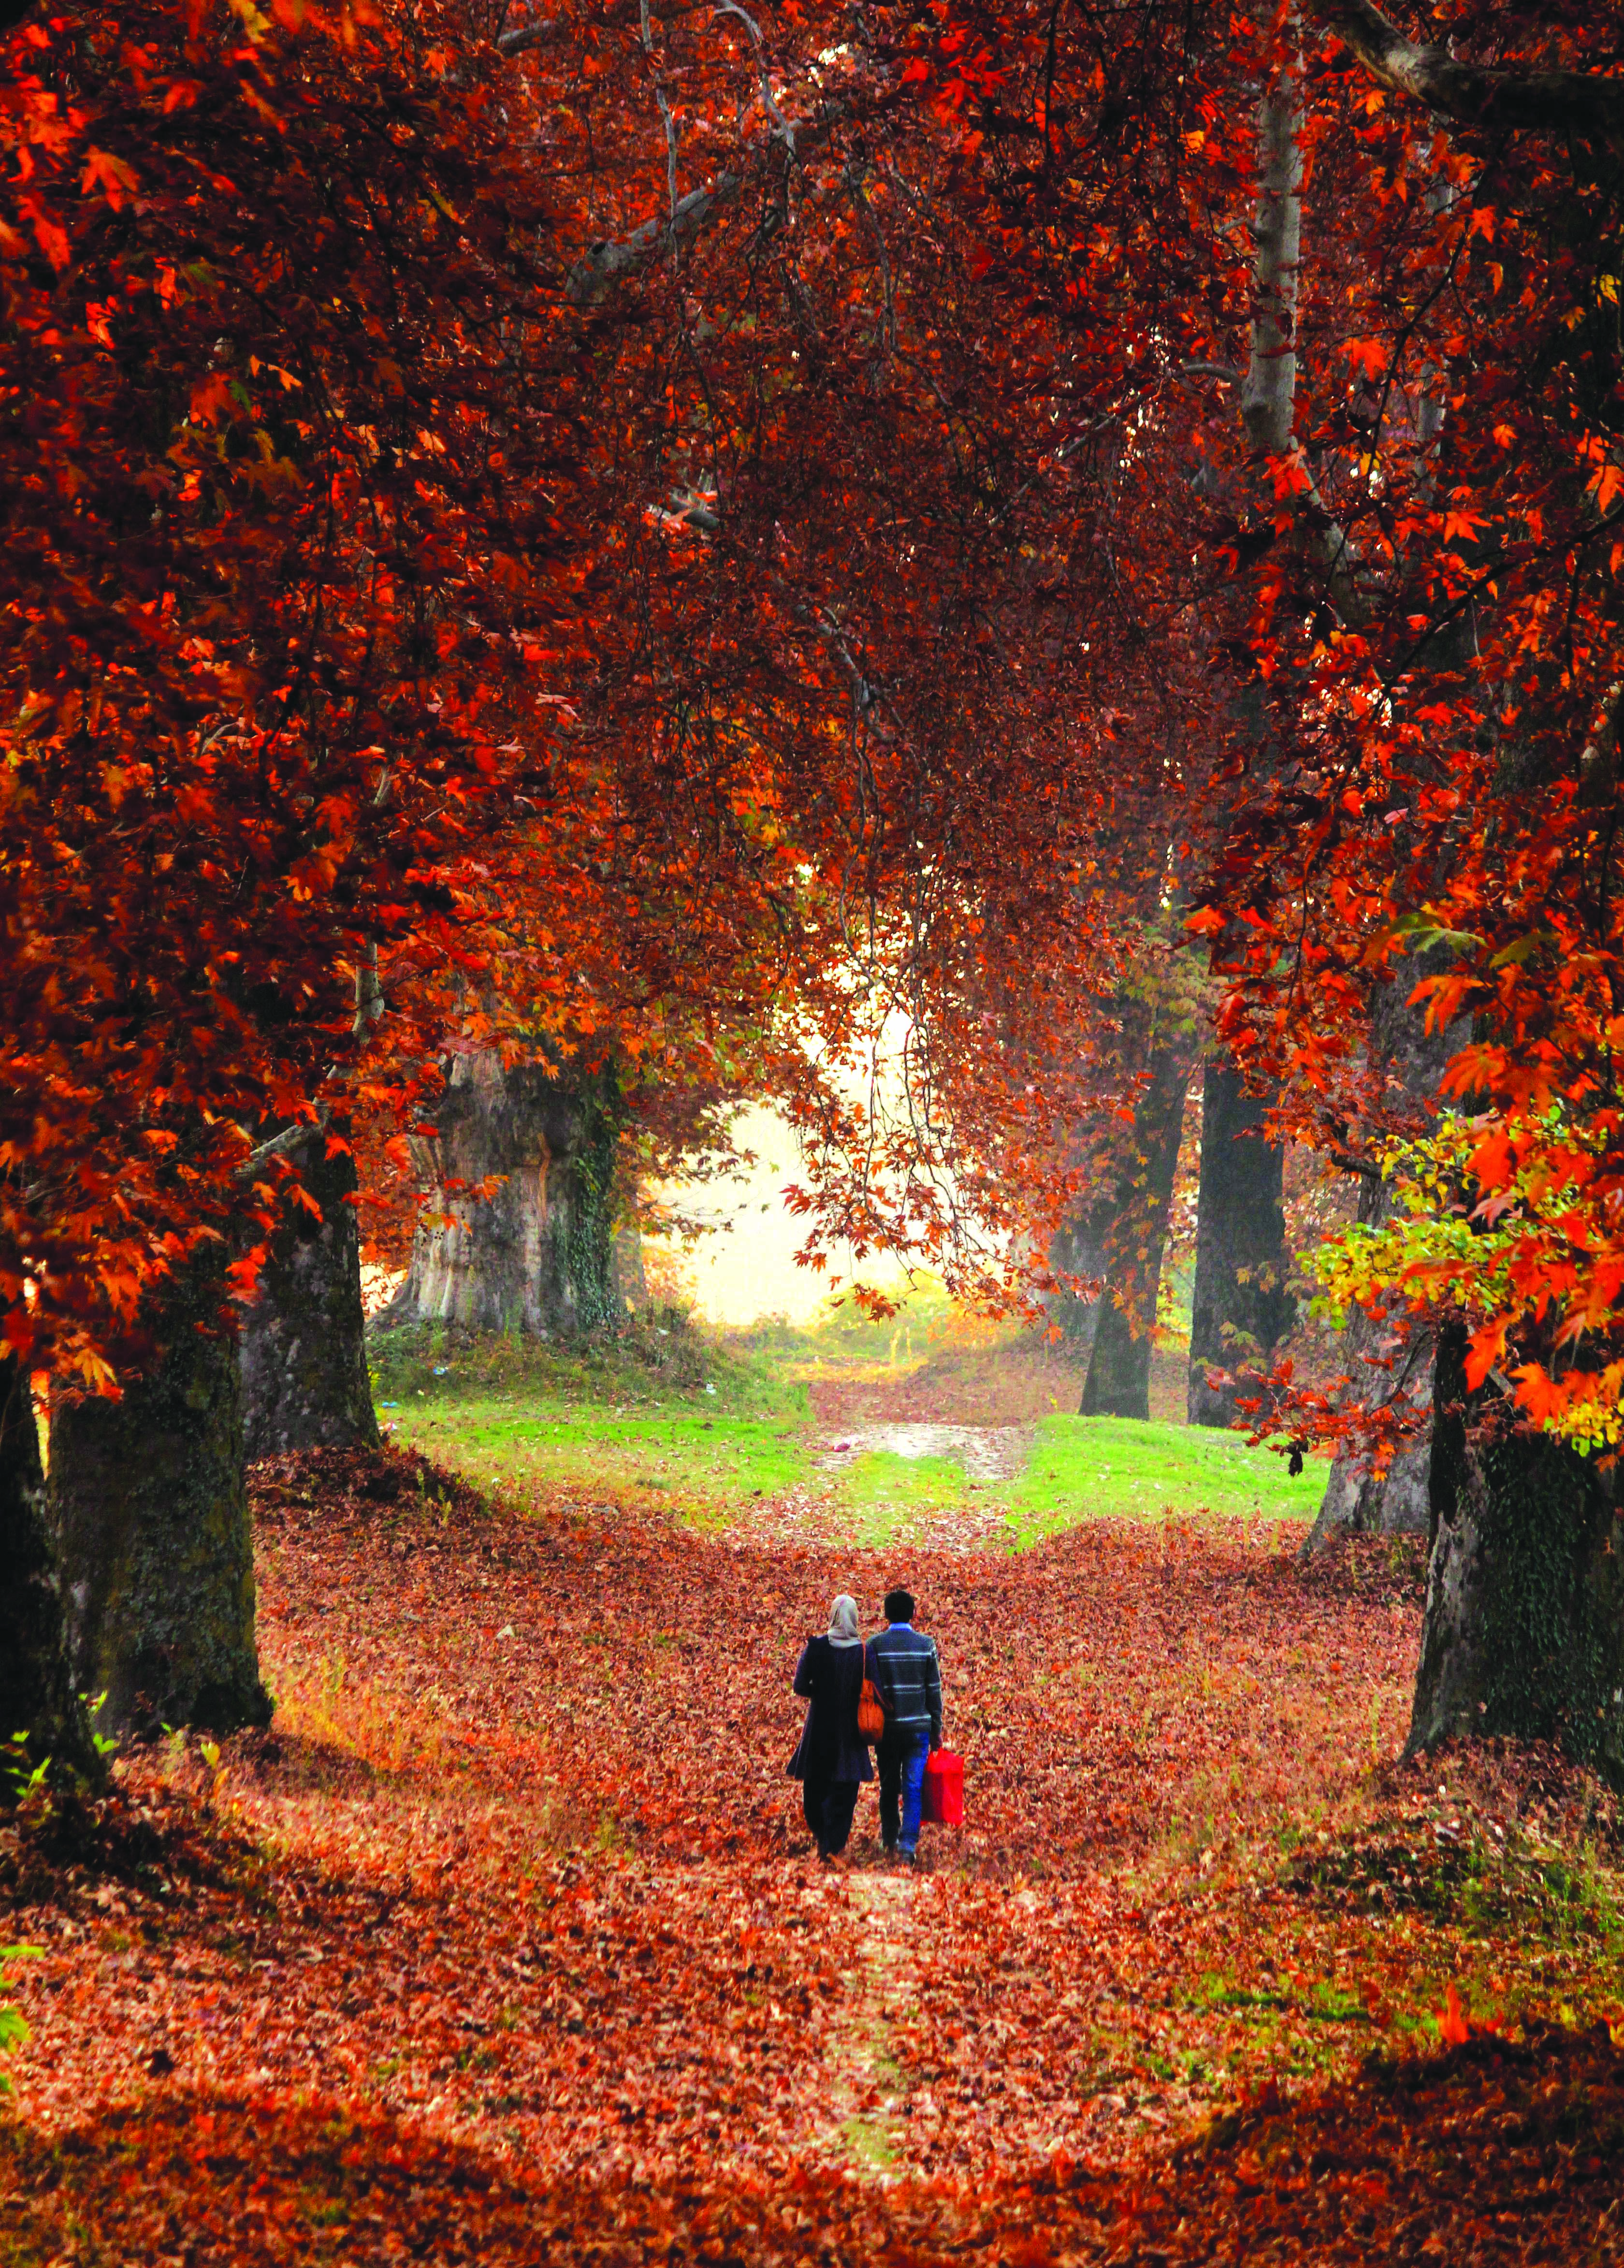 essay on autumn in kashmir This essay is a sequel of sorts to an earlier blog post essay short essay on autumn in kashmir drums of autumn summary executive short essay about burger use of.